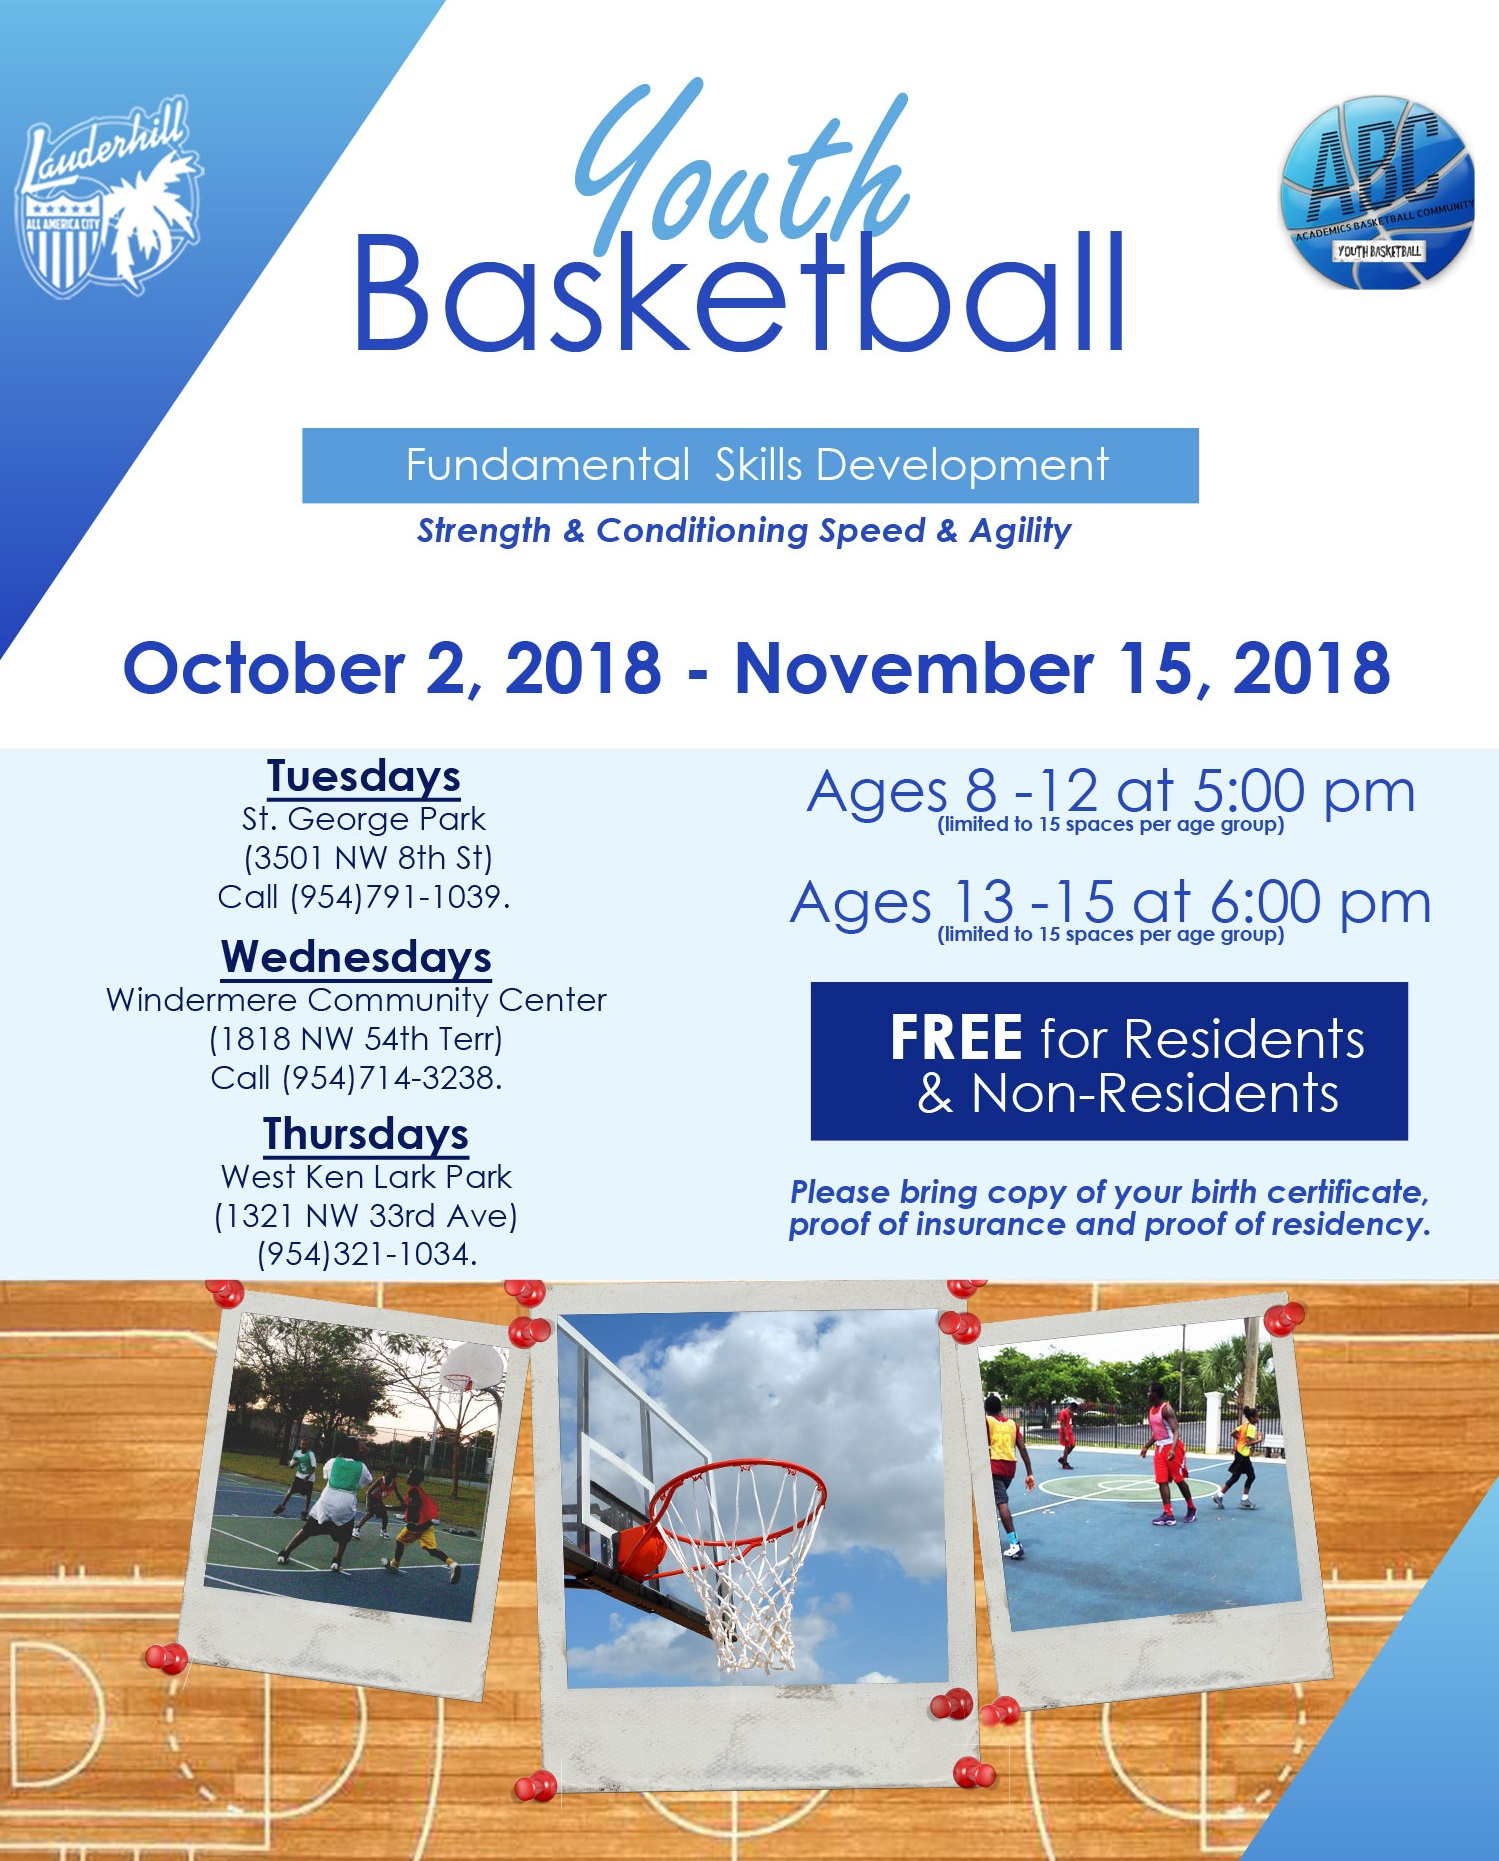 Youth Basketball Fundamental Skills Development